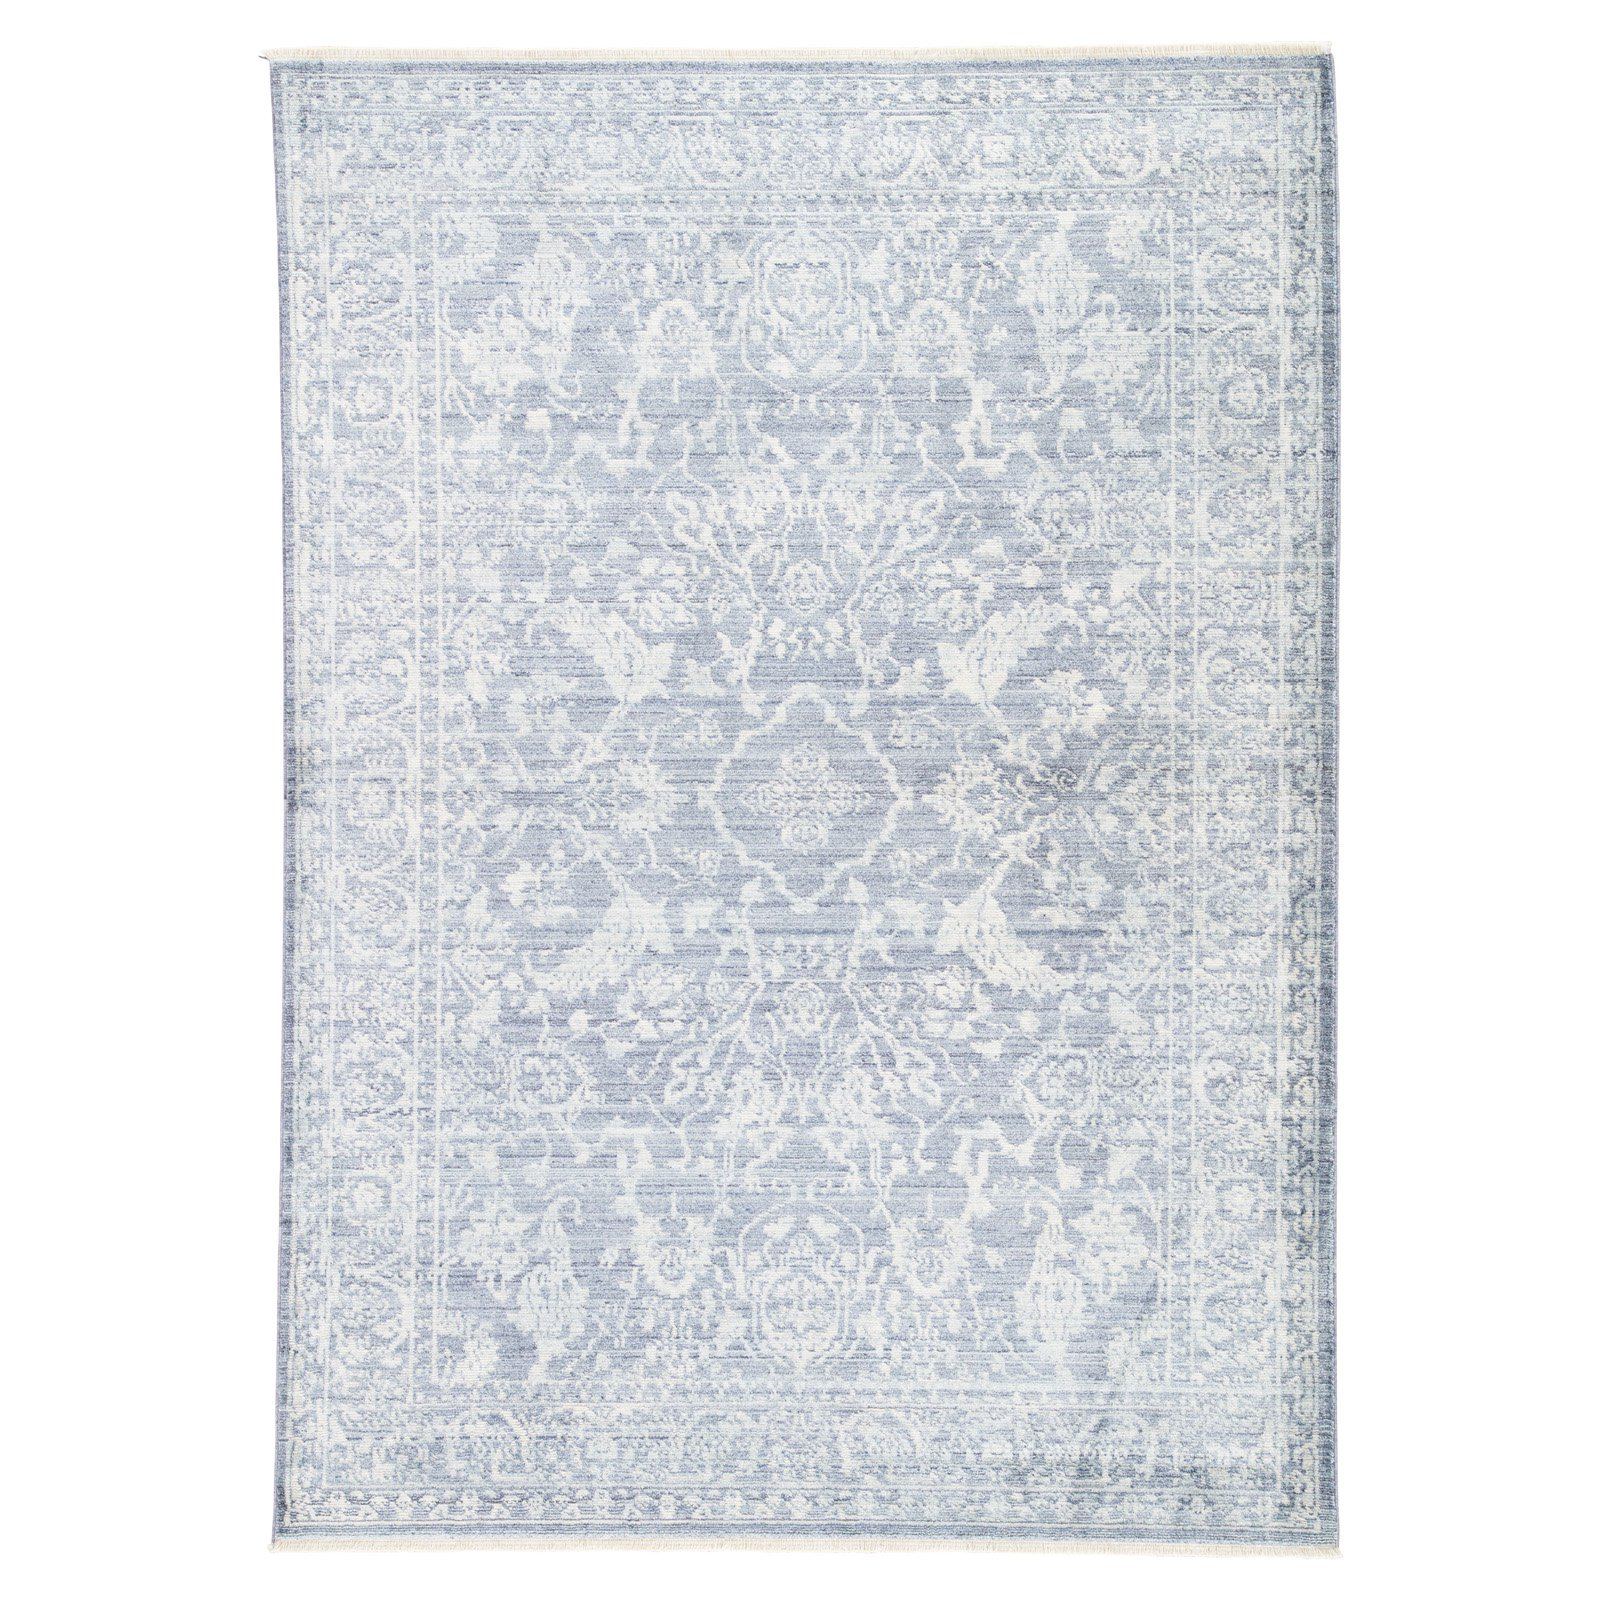 Peregrin Indoor Area Rug In 2021 Blue And White Rug Area Rugs Indoor Area Rugs